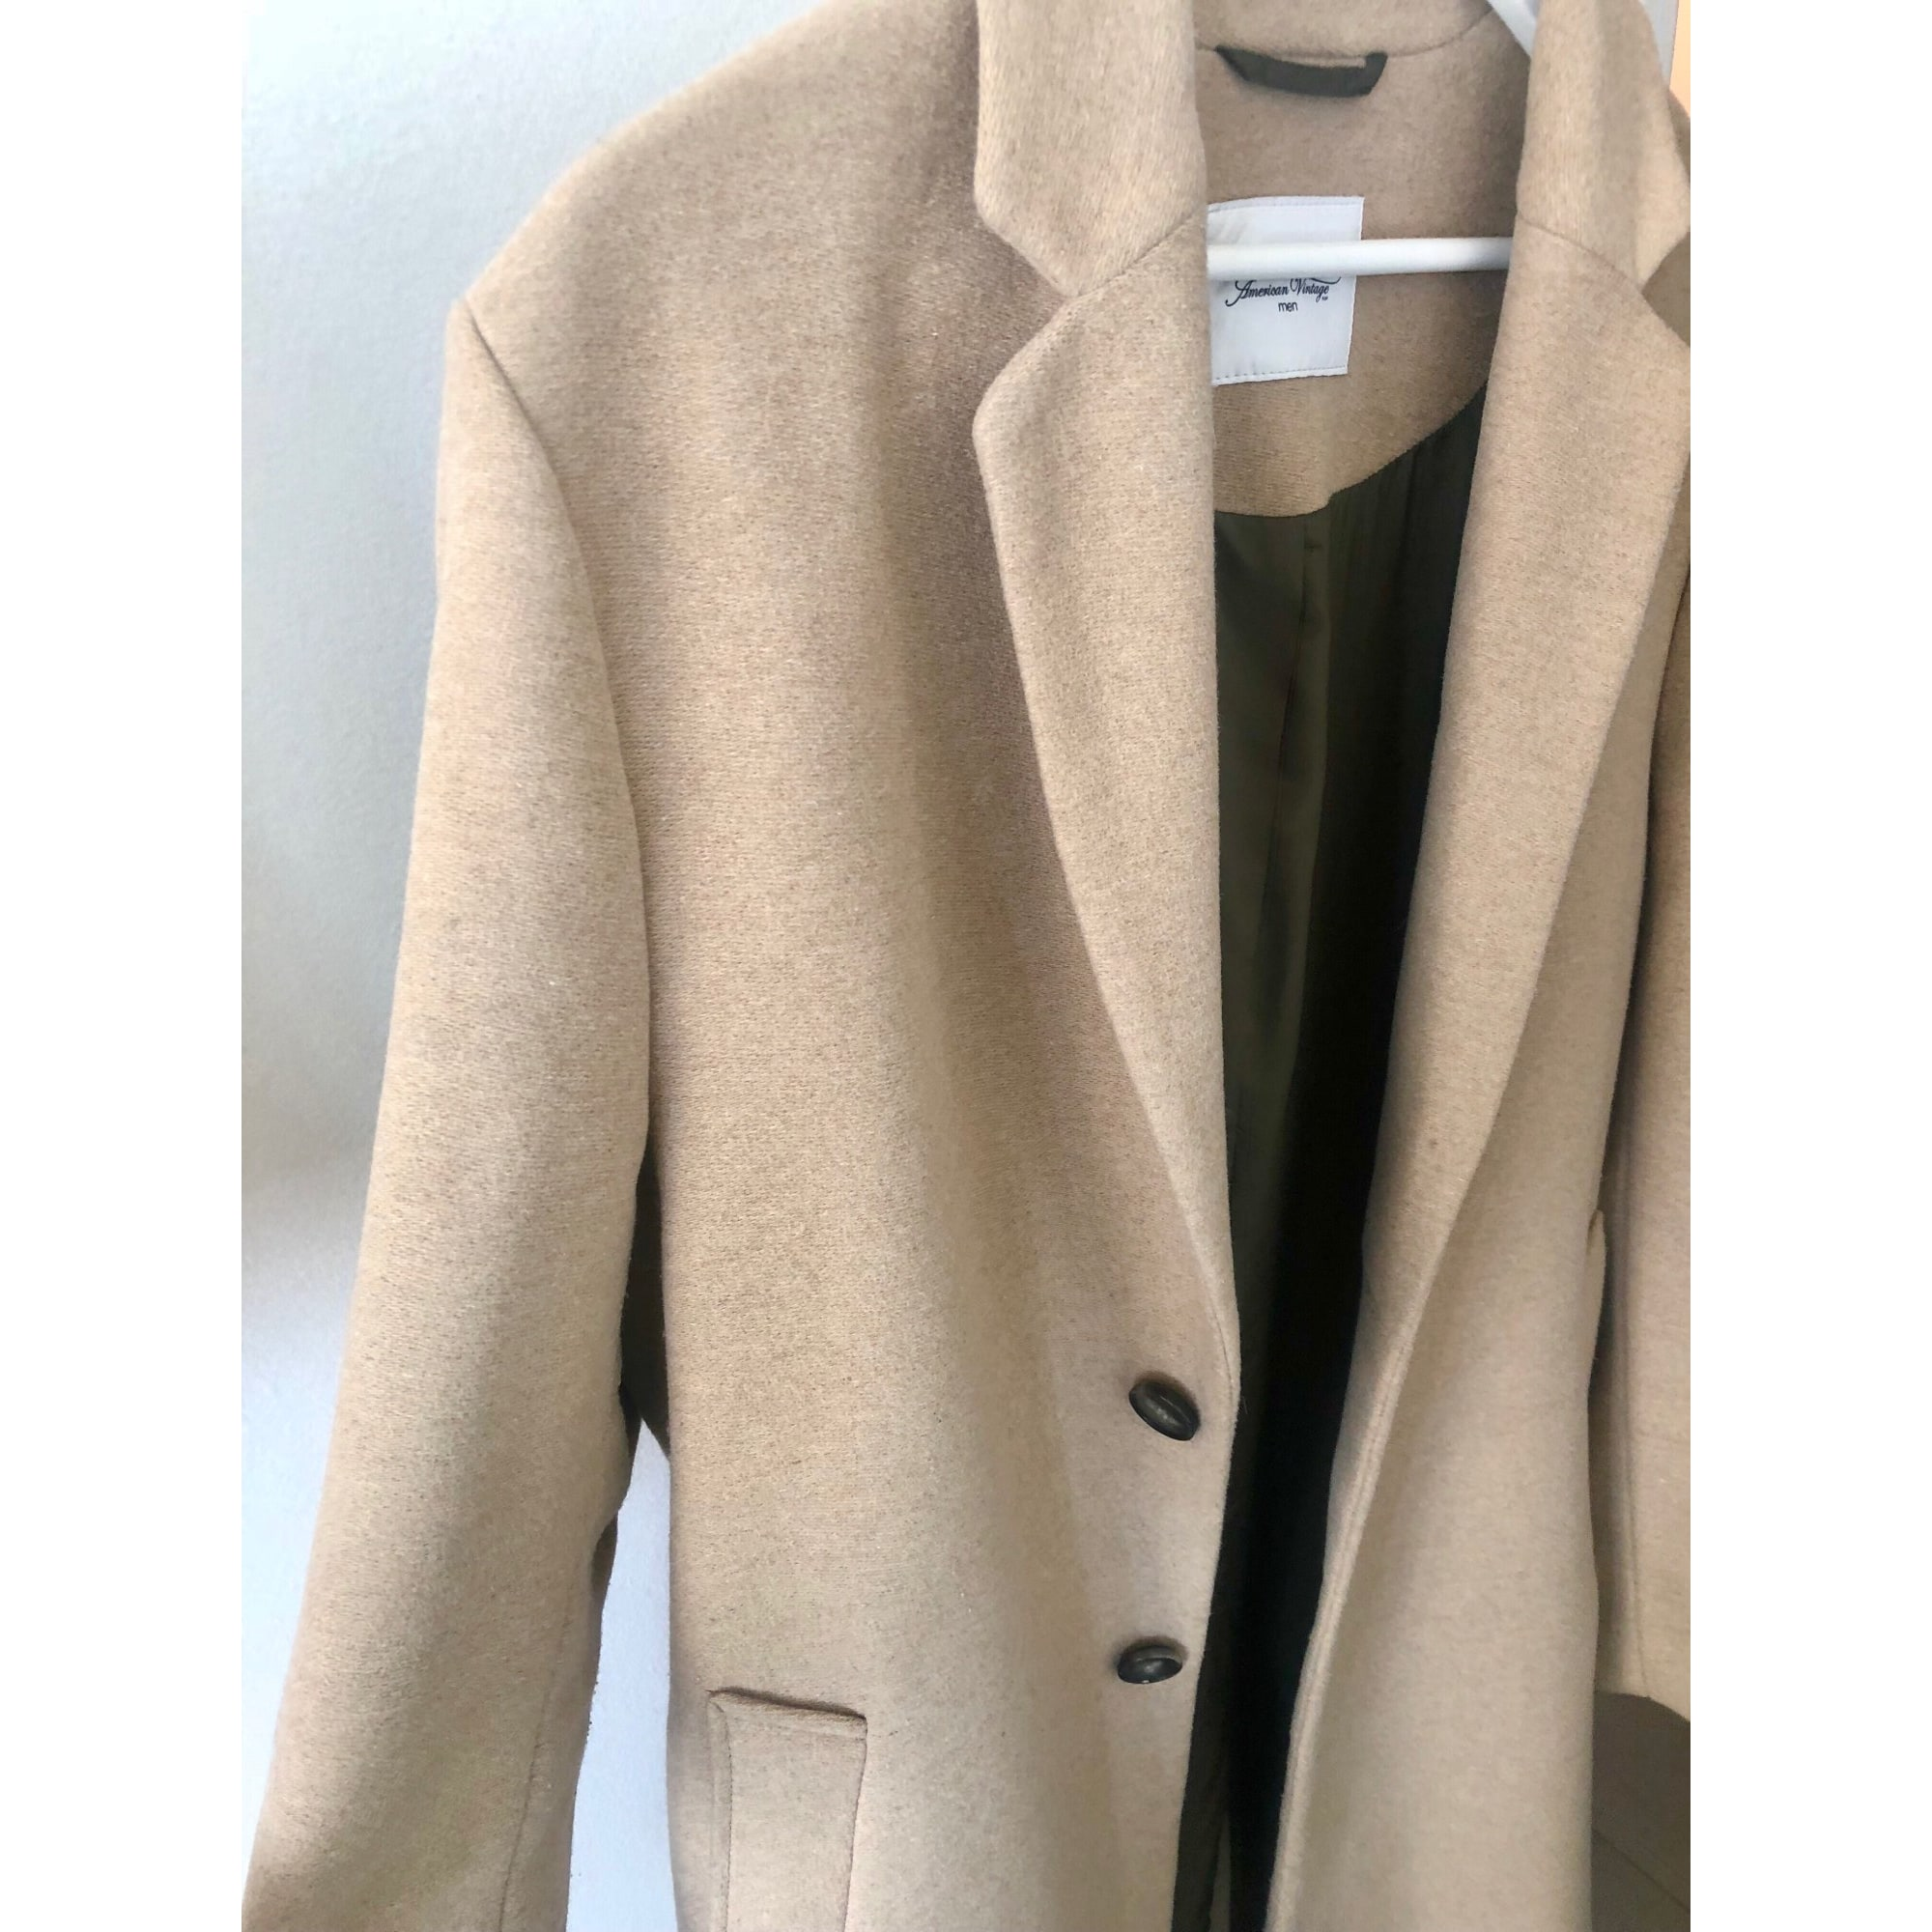 plus récent 0a7e3 ca220 Manteau